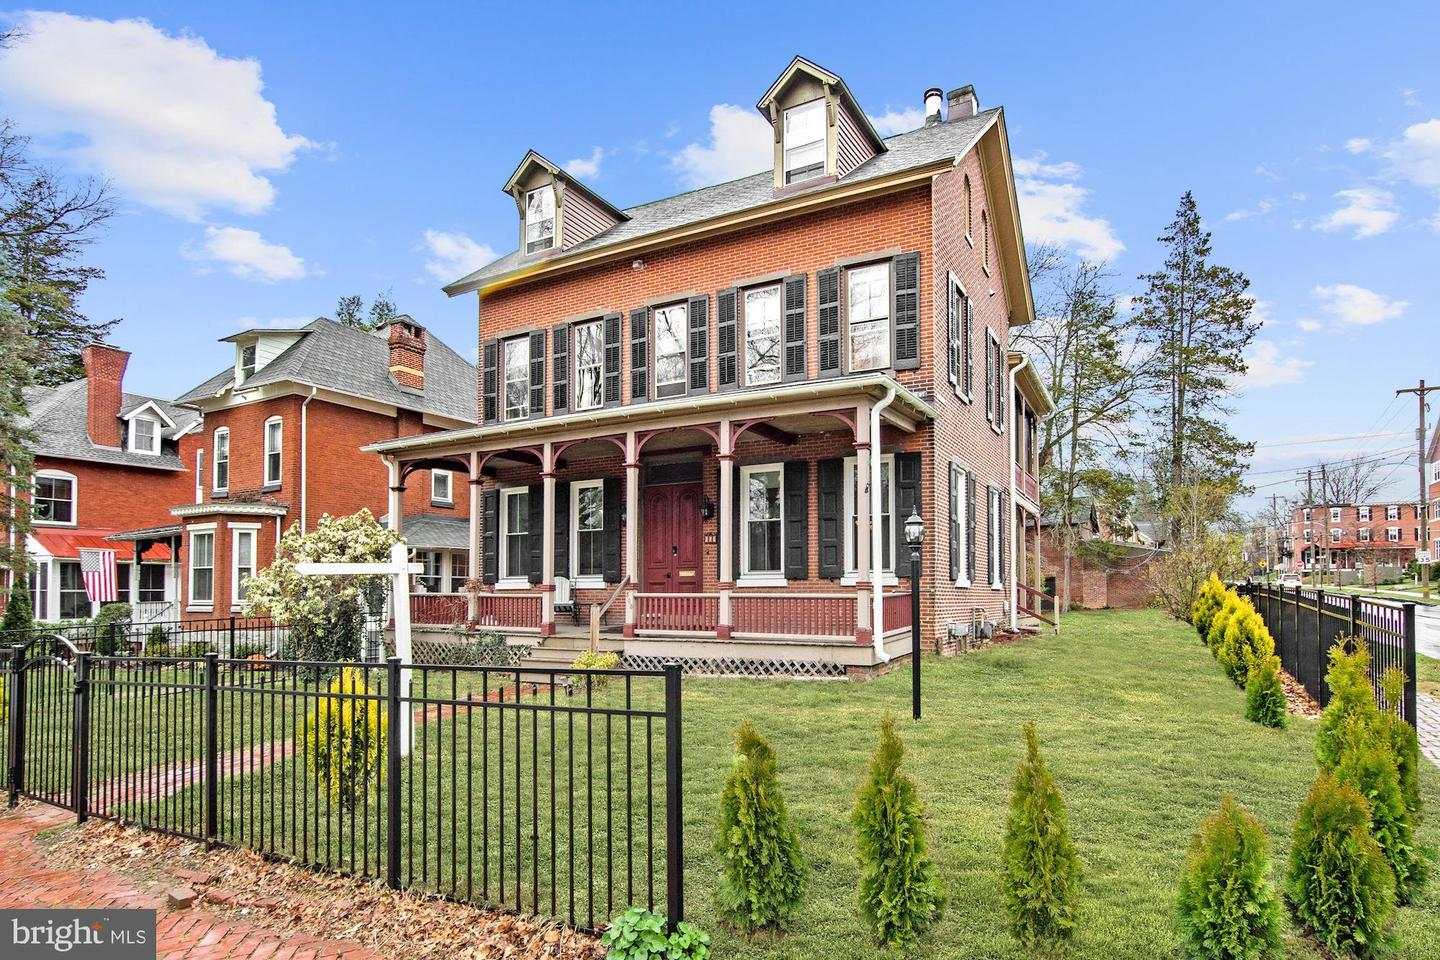 503 N High Street West Chester, PA 19380